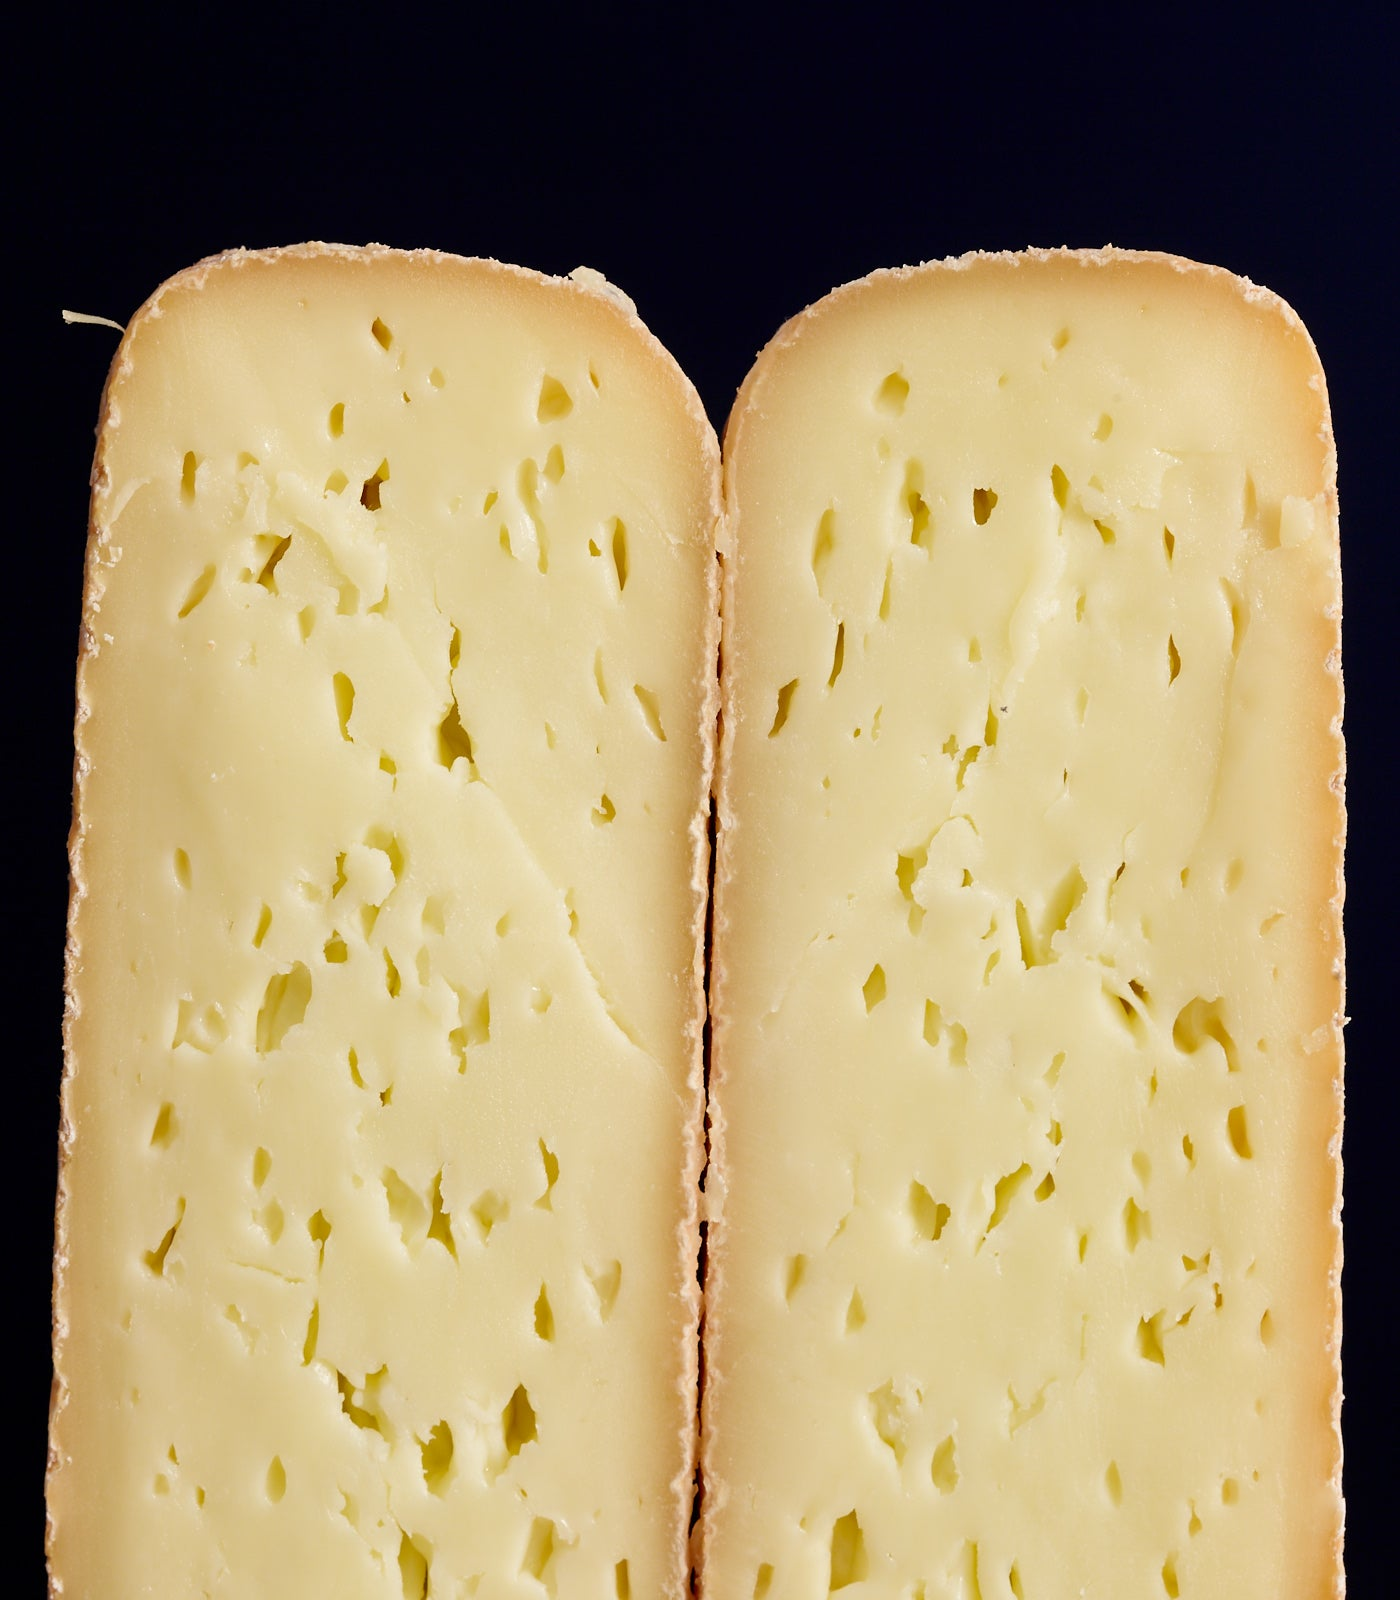 Cross-section of a whole Durrus washed rind cow's milk cheese, showing the soft, creamy paste with tiny holes